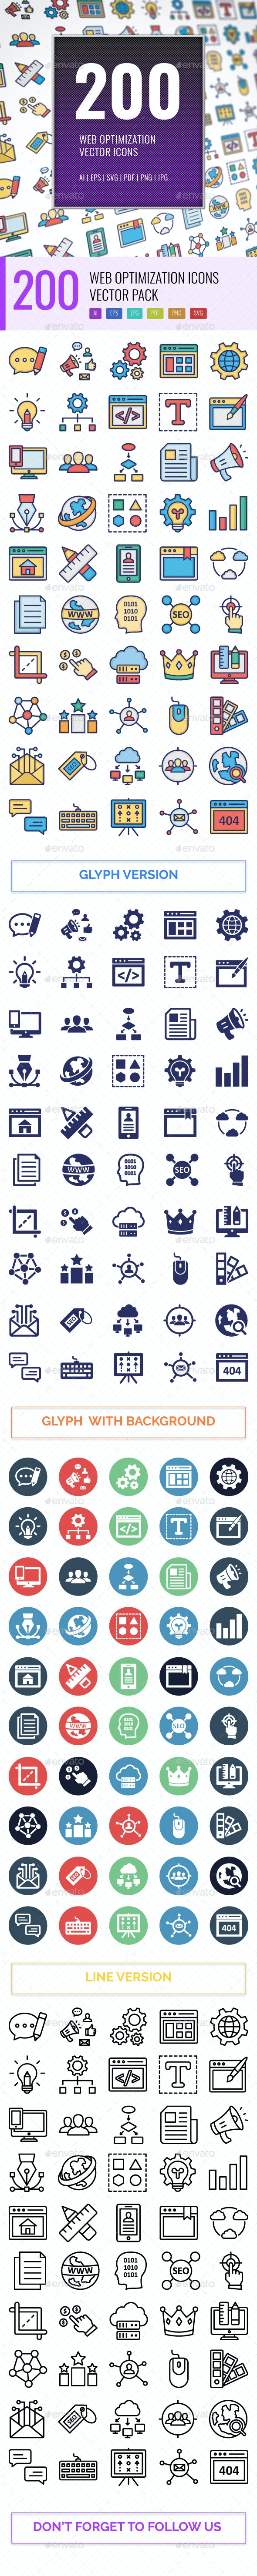 200 Web Optimization Vector Icons Pack - Icons